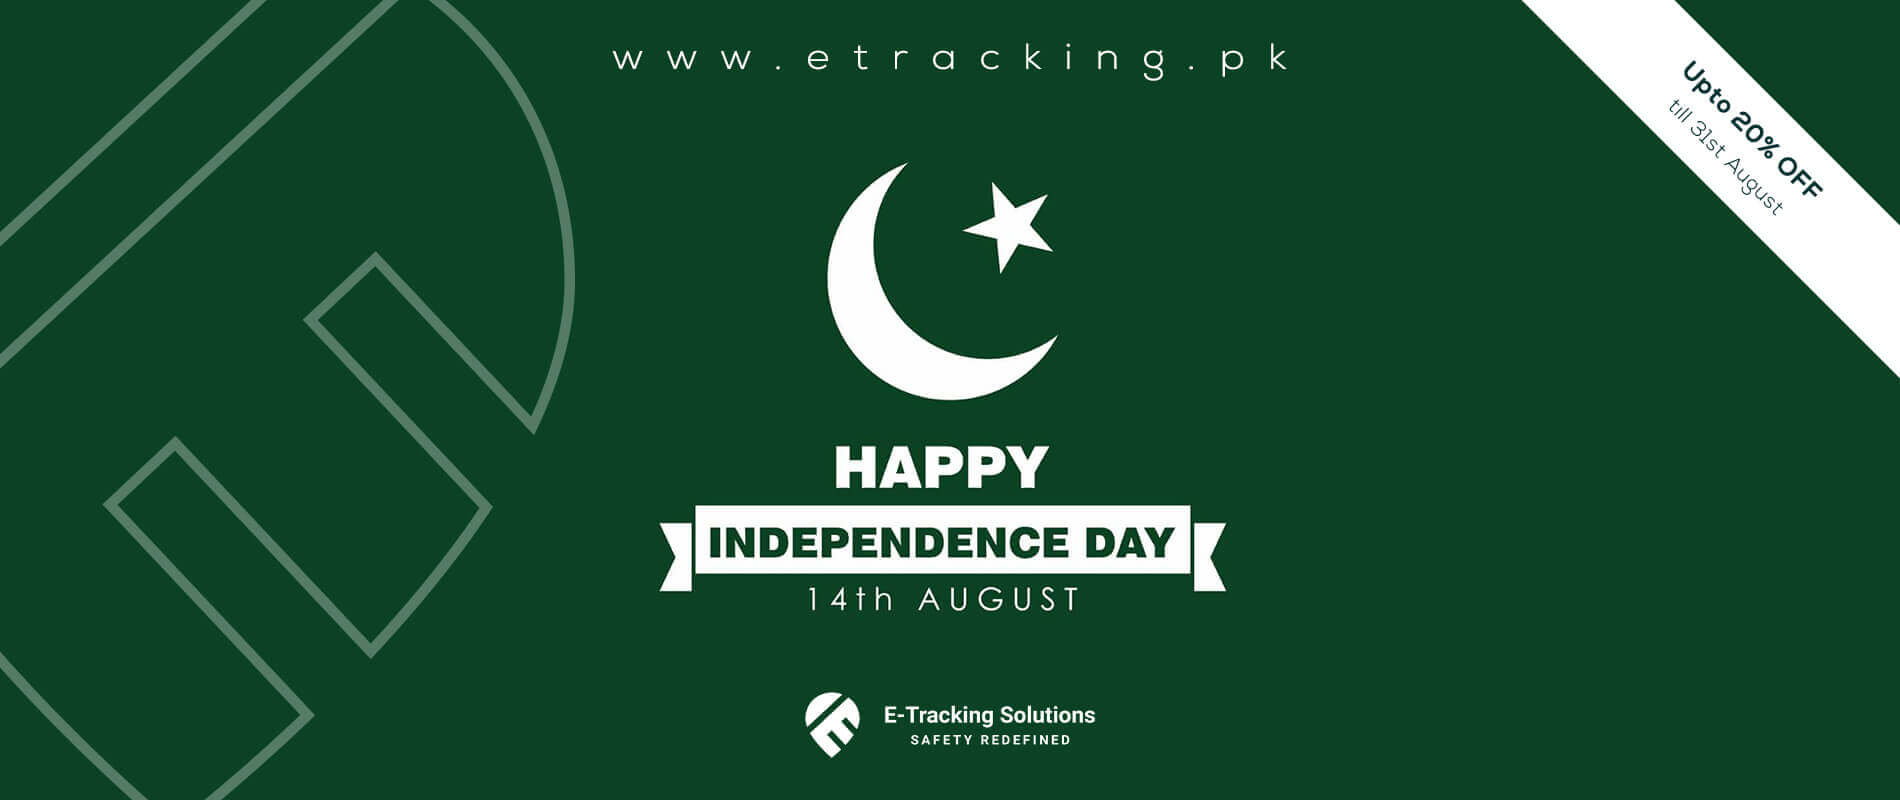 14-august-discount-offer-cover-etracking.pk-2021-tiny